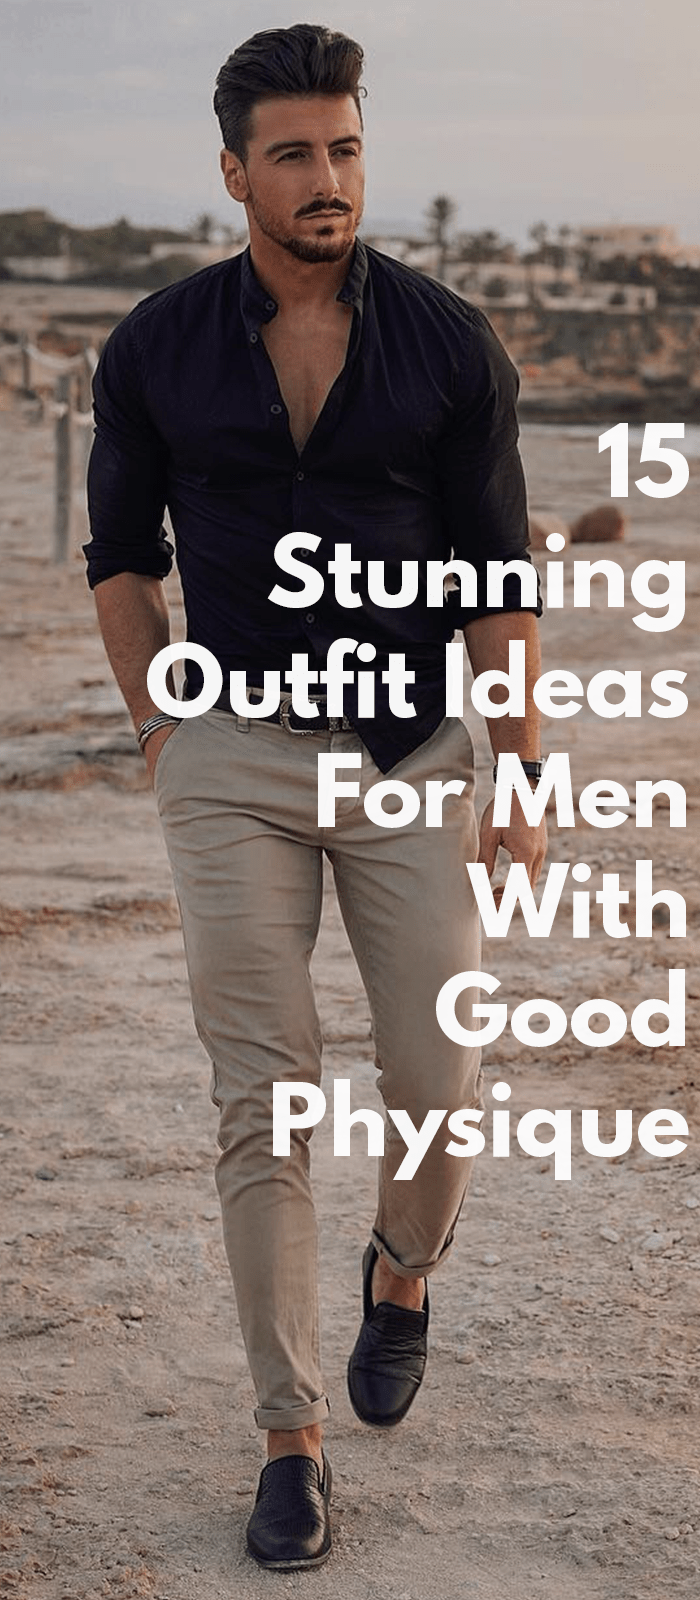 15 Stunning Outfit Ideas For Men With Good Physique!